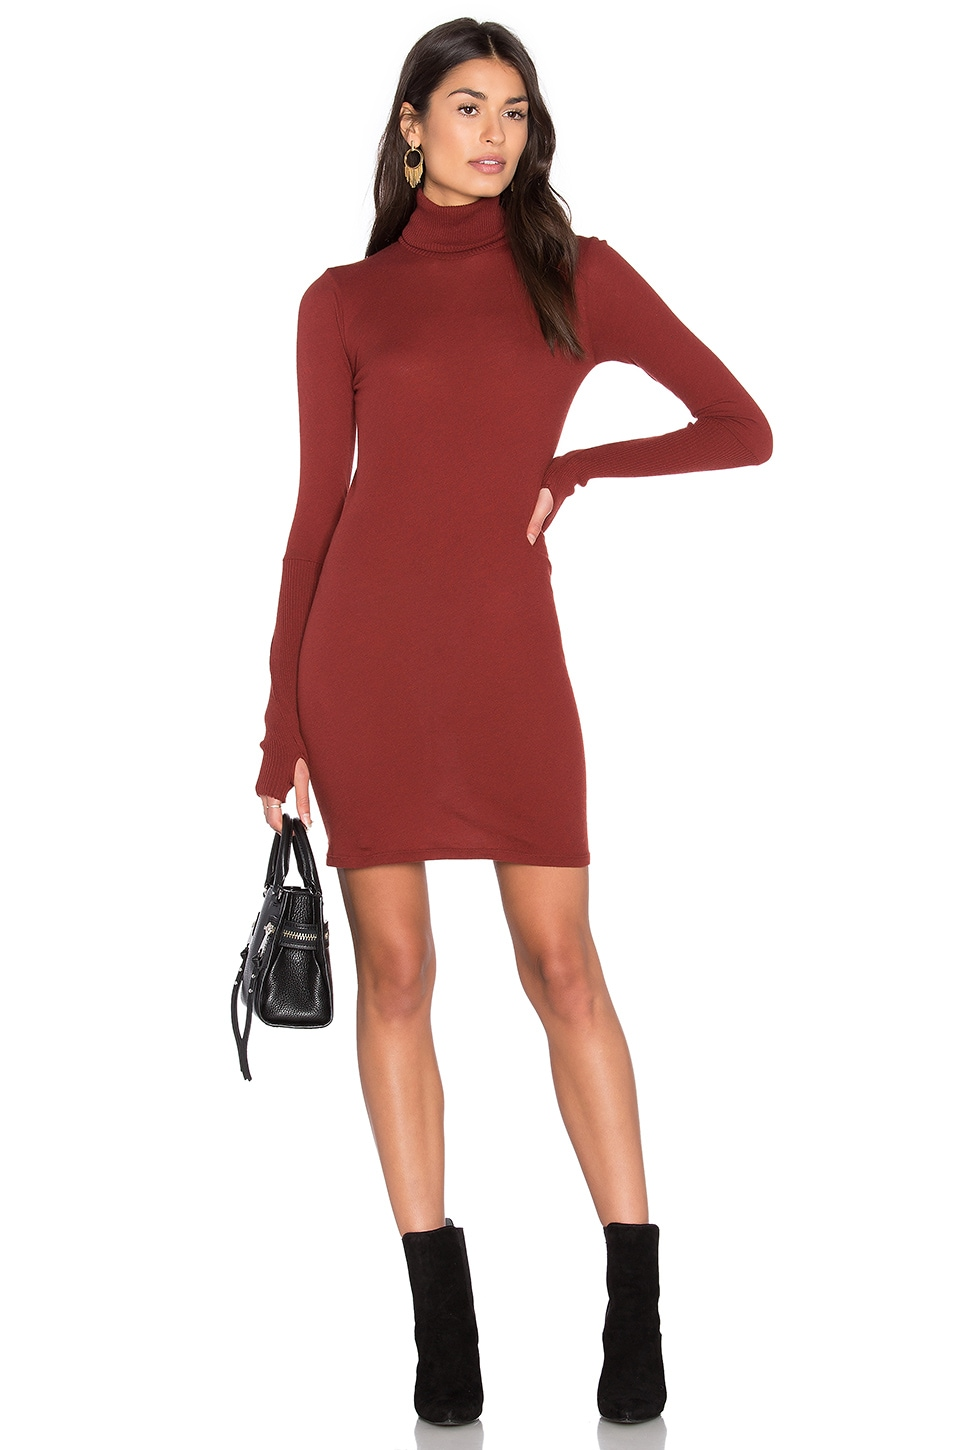 Cashmere Long Sleeve Turtleneck Dress by Enza Costa